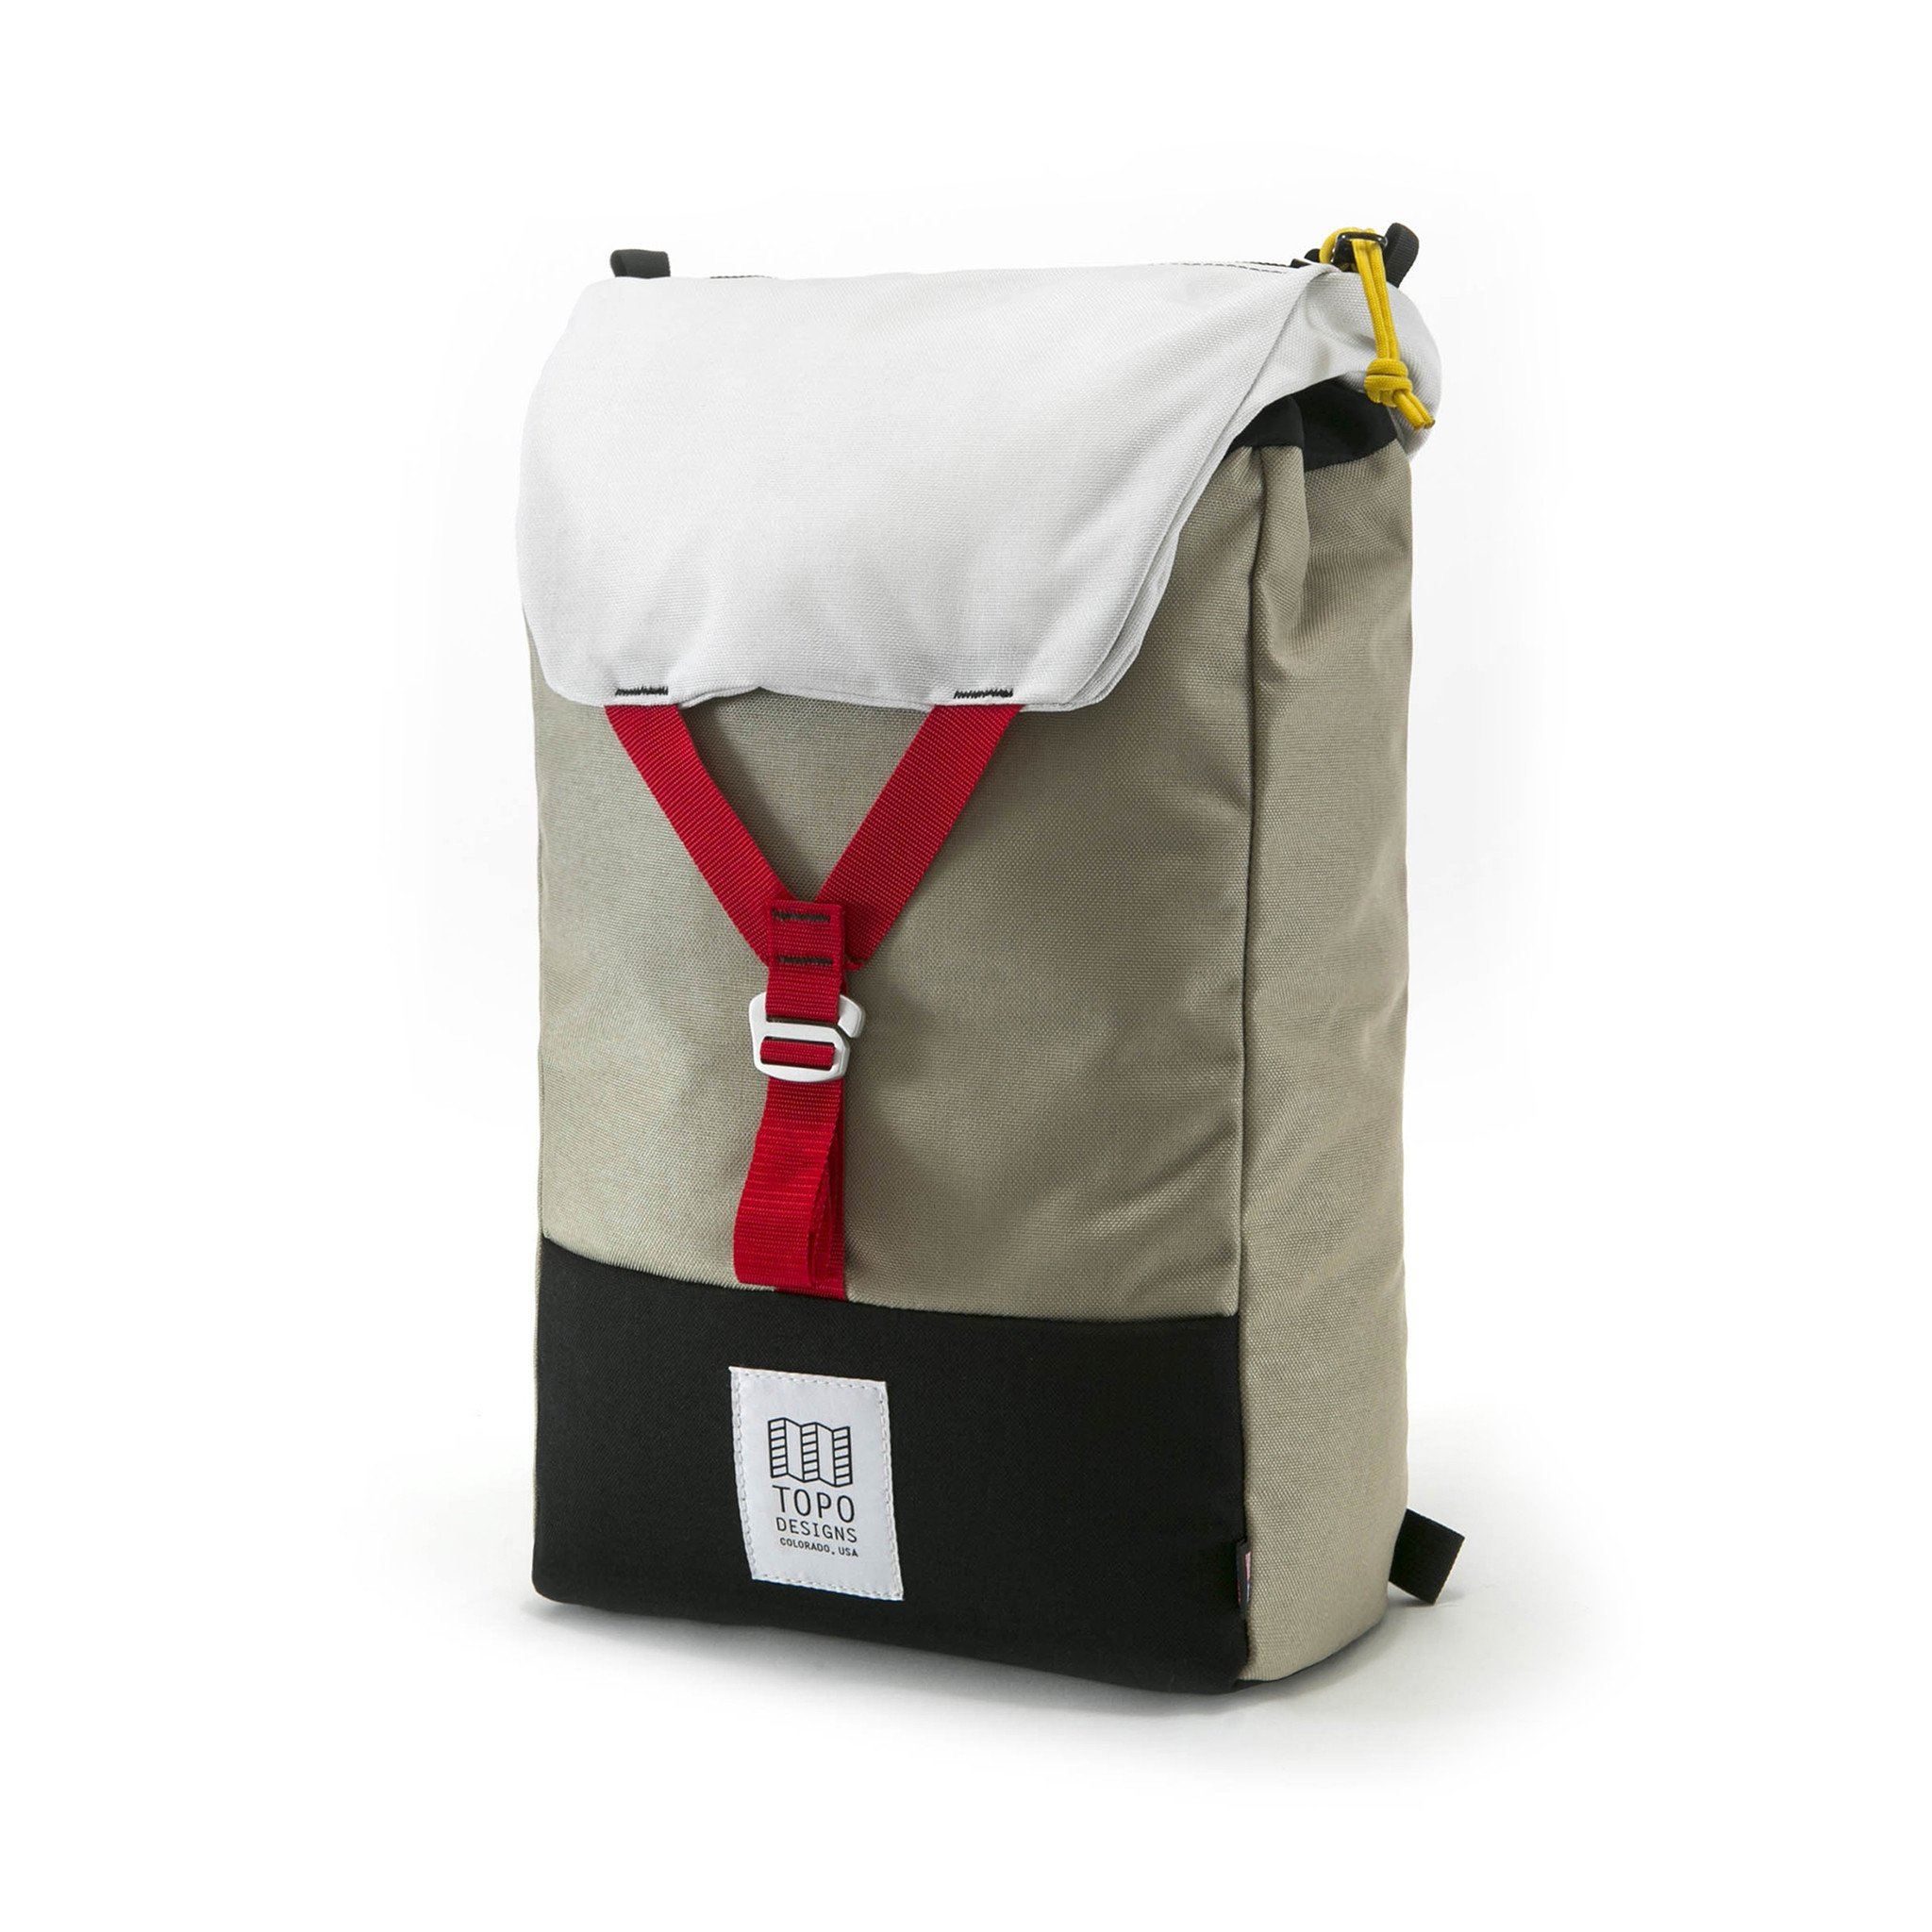 4d43ac447 Topo Designs Y-Pack | The Coolector